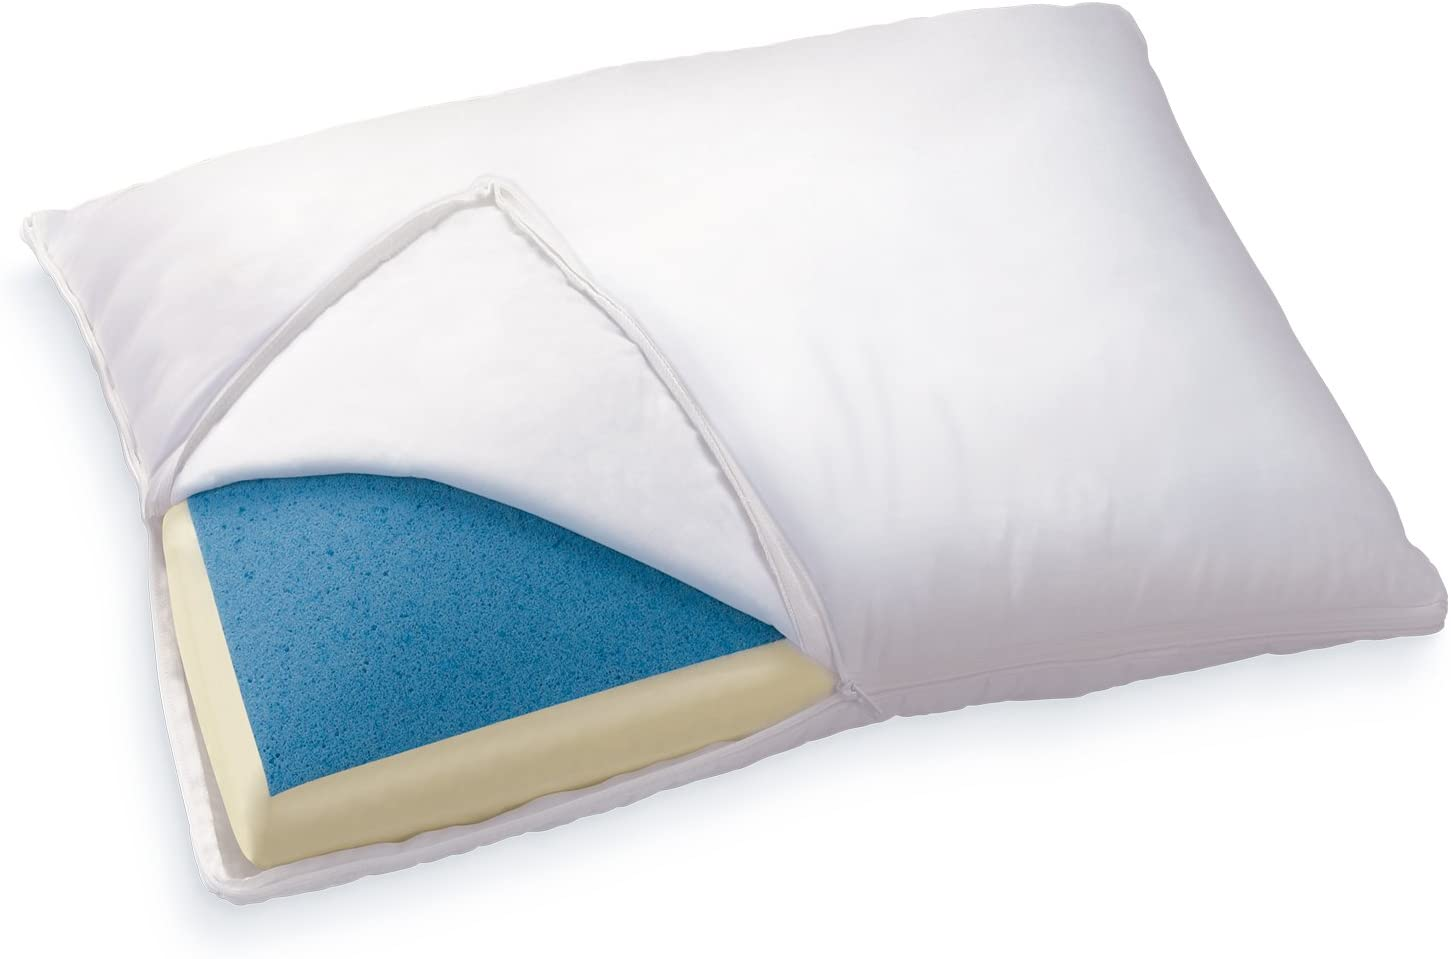 Sleep Innovations Reversible Cooling Gel Memory Foam & Memory Foam Pillow with Hypoallergenic Cover, Made in The USA with a 5-Year Warranty